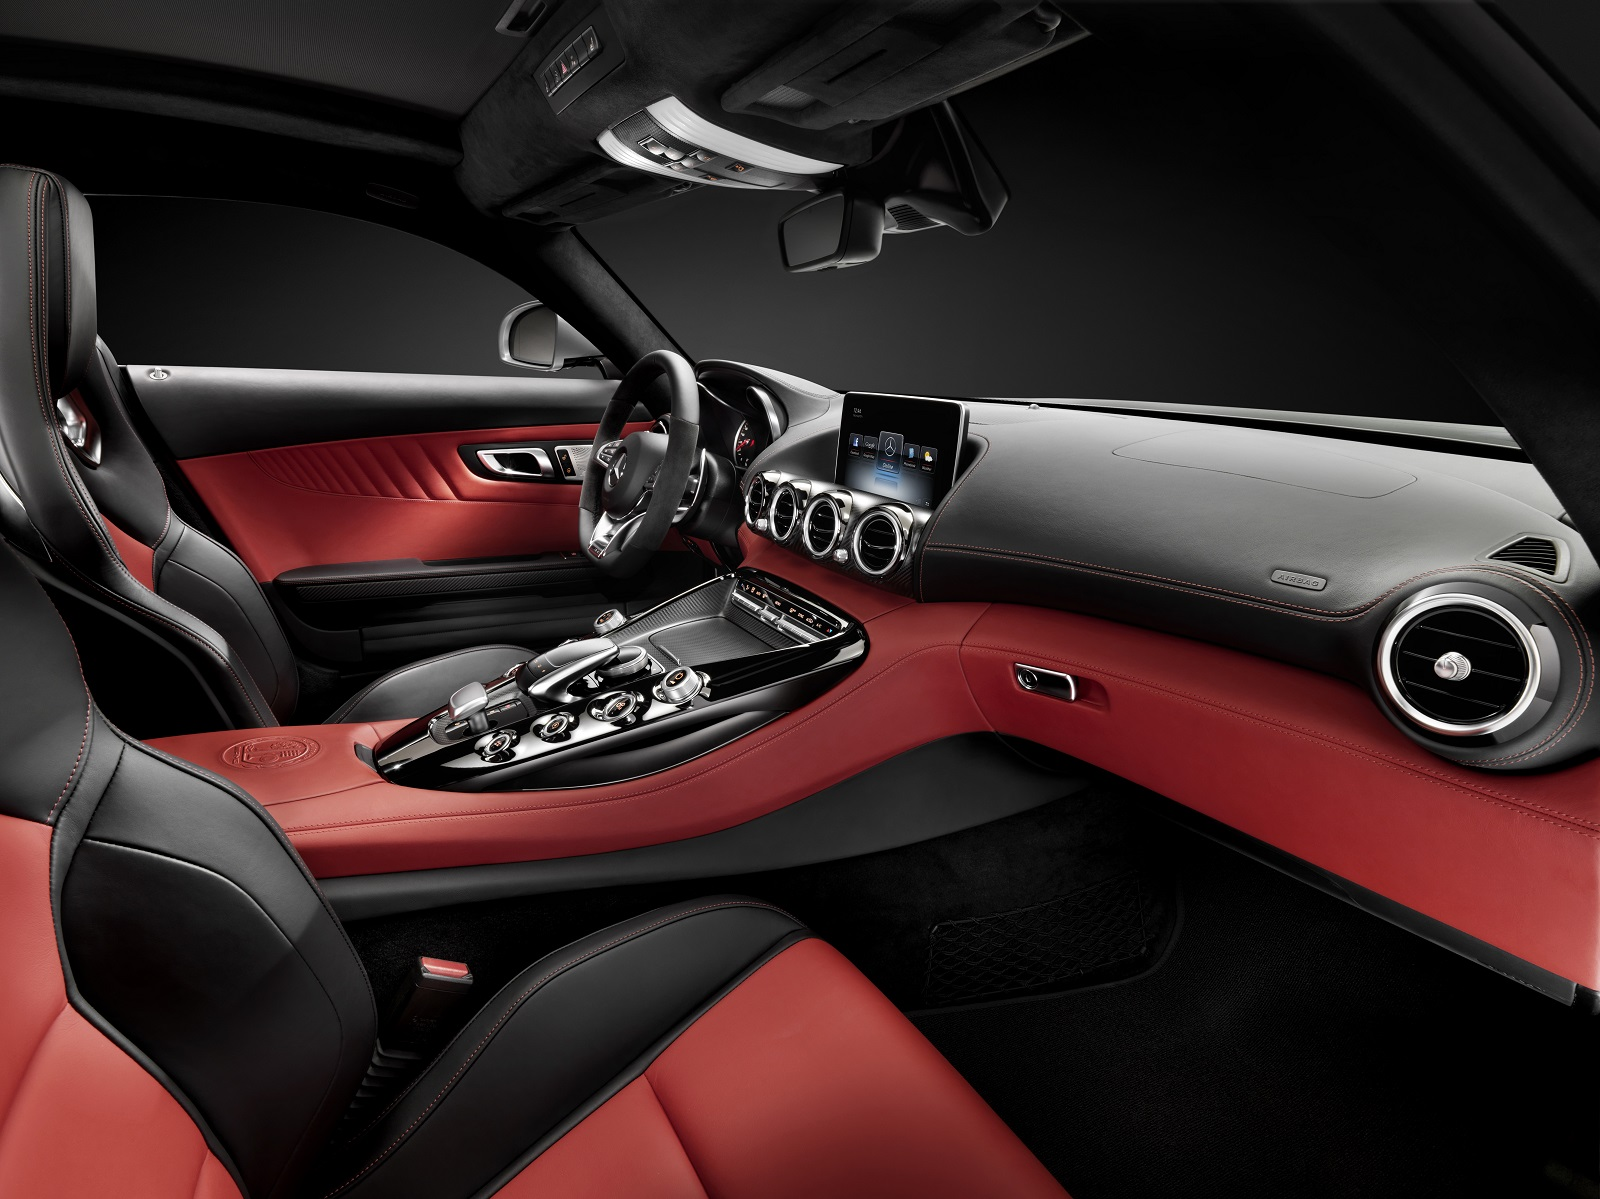 2015 Mercedes-AMG GT Officially Announced